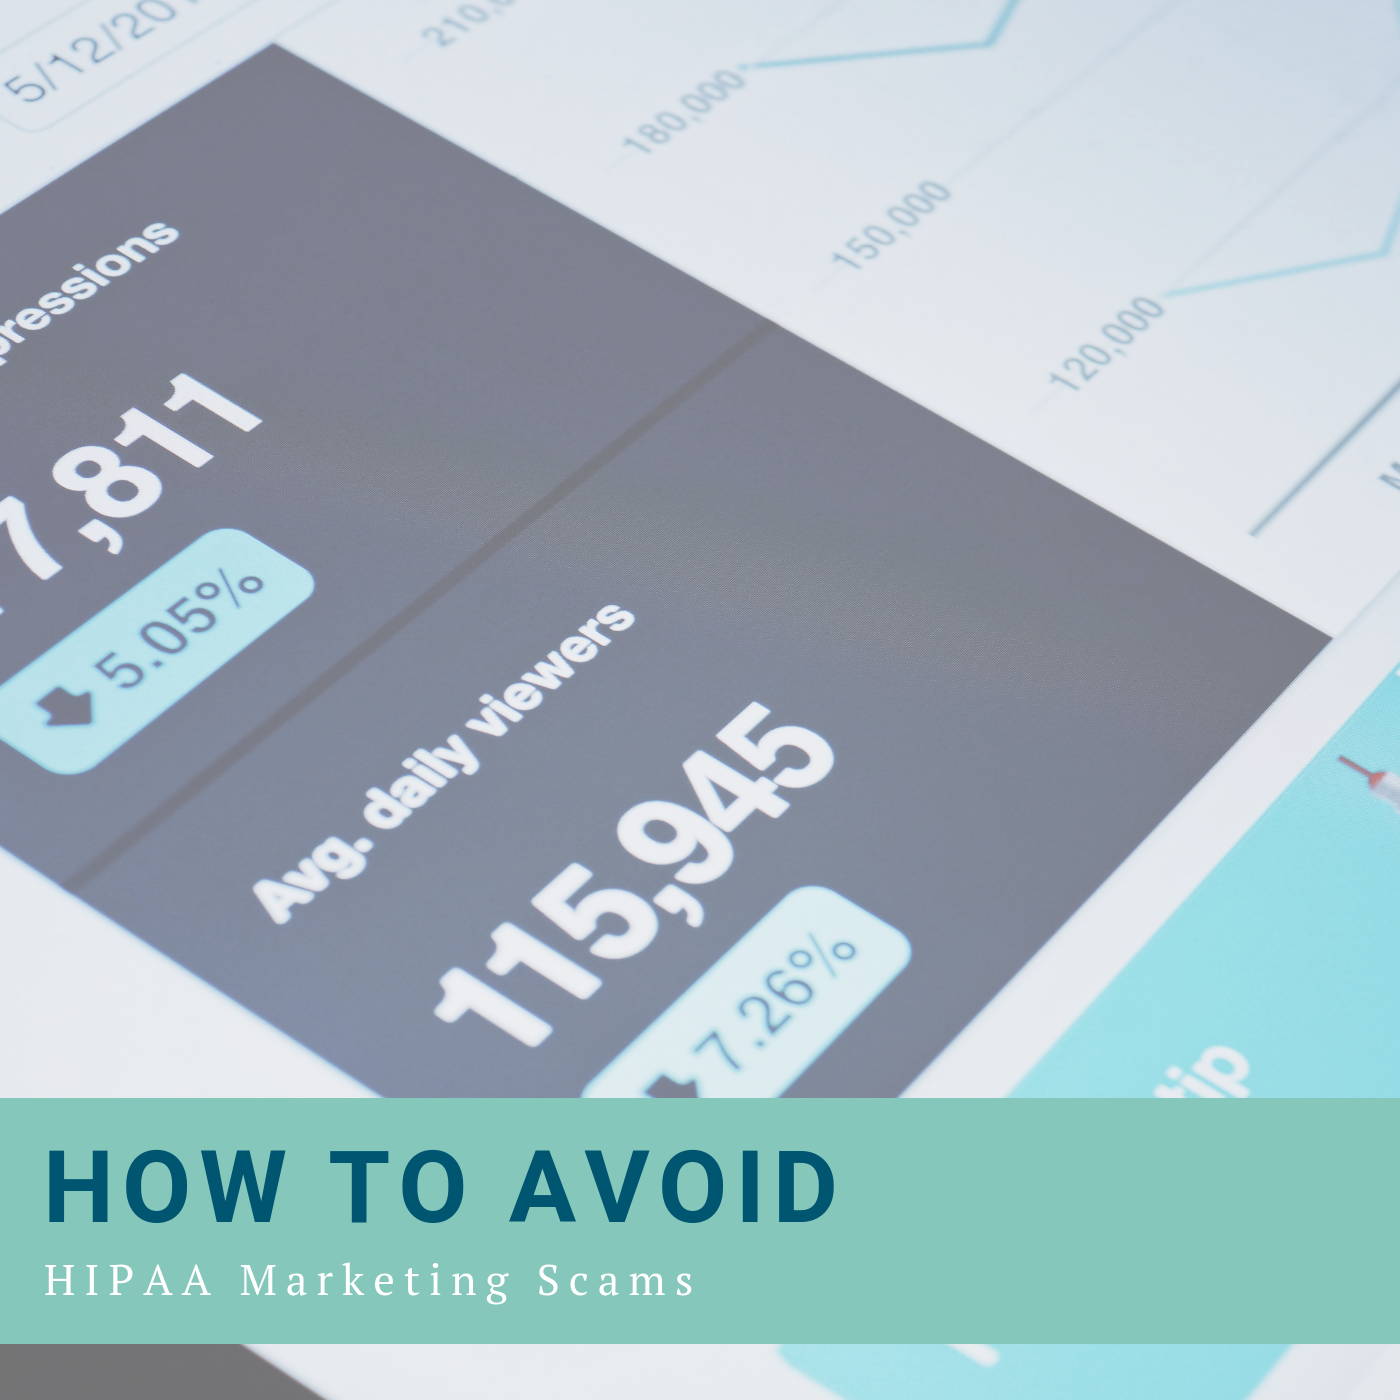 Avoid HIPAA Marketing Scams